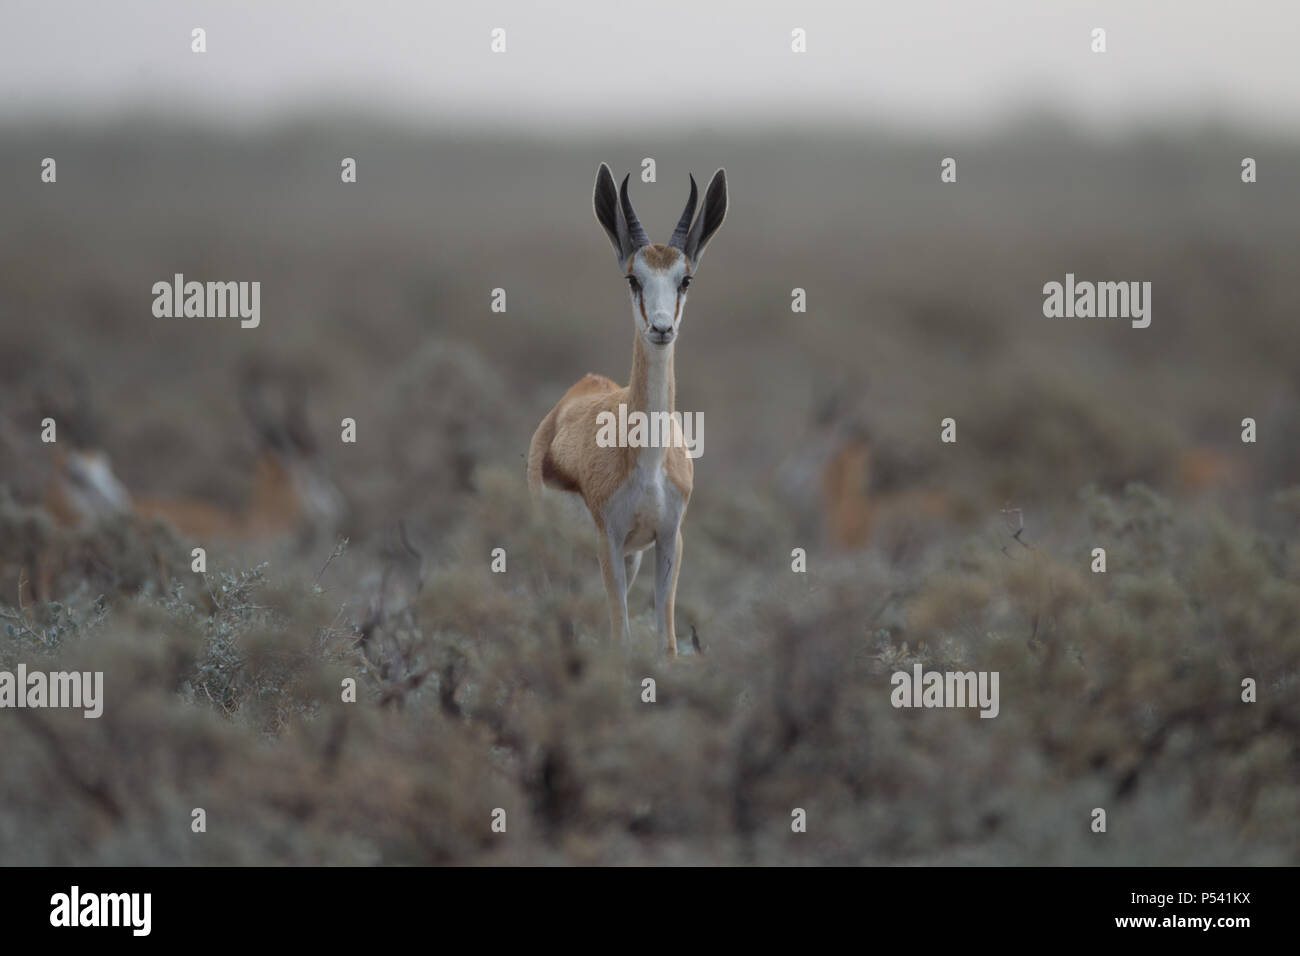 Gazelle in wilderness - Stock Image